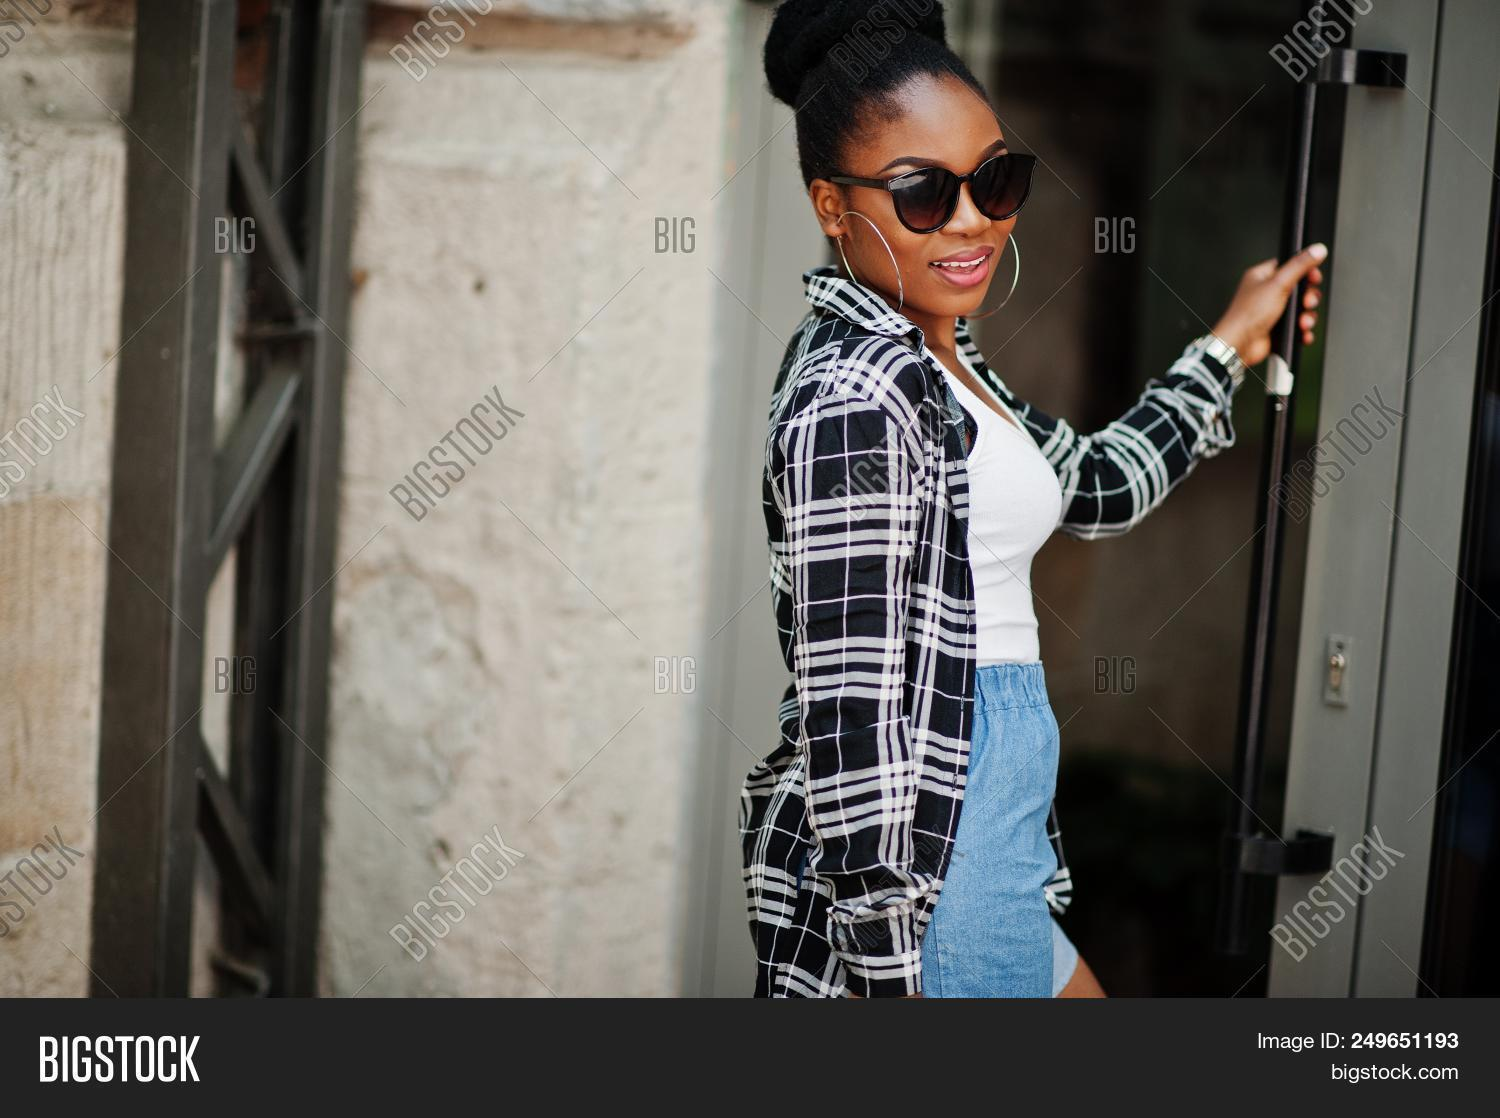 d29dcc94595 Hip hop african american girl on sunglasses and jeans shorts. Casual street  fashion portrait of black woman.